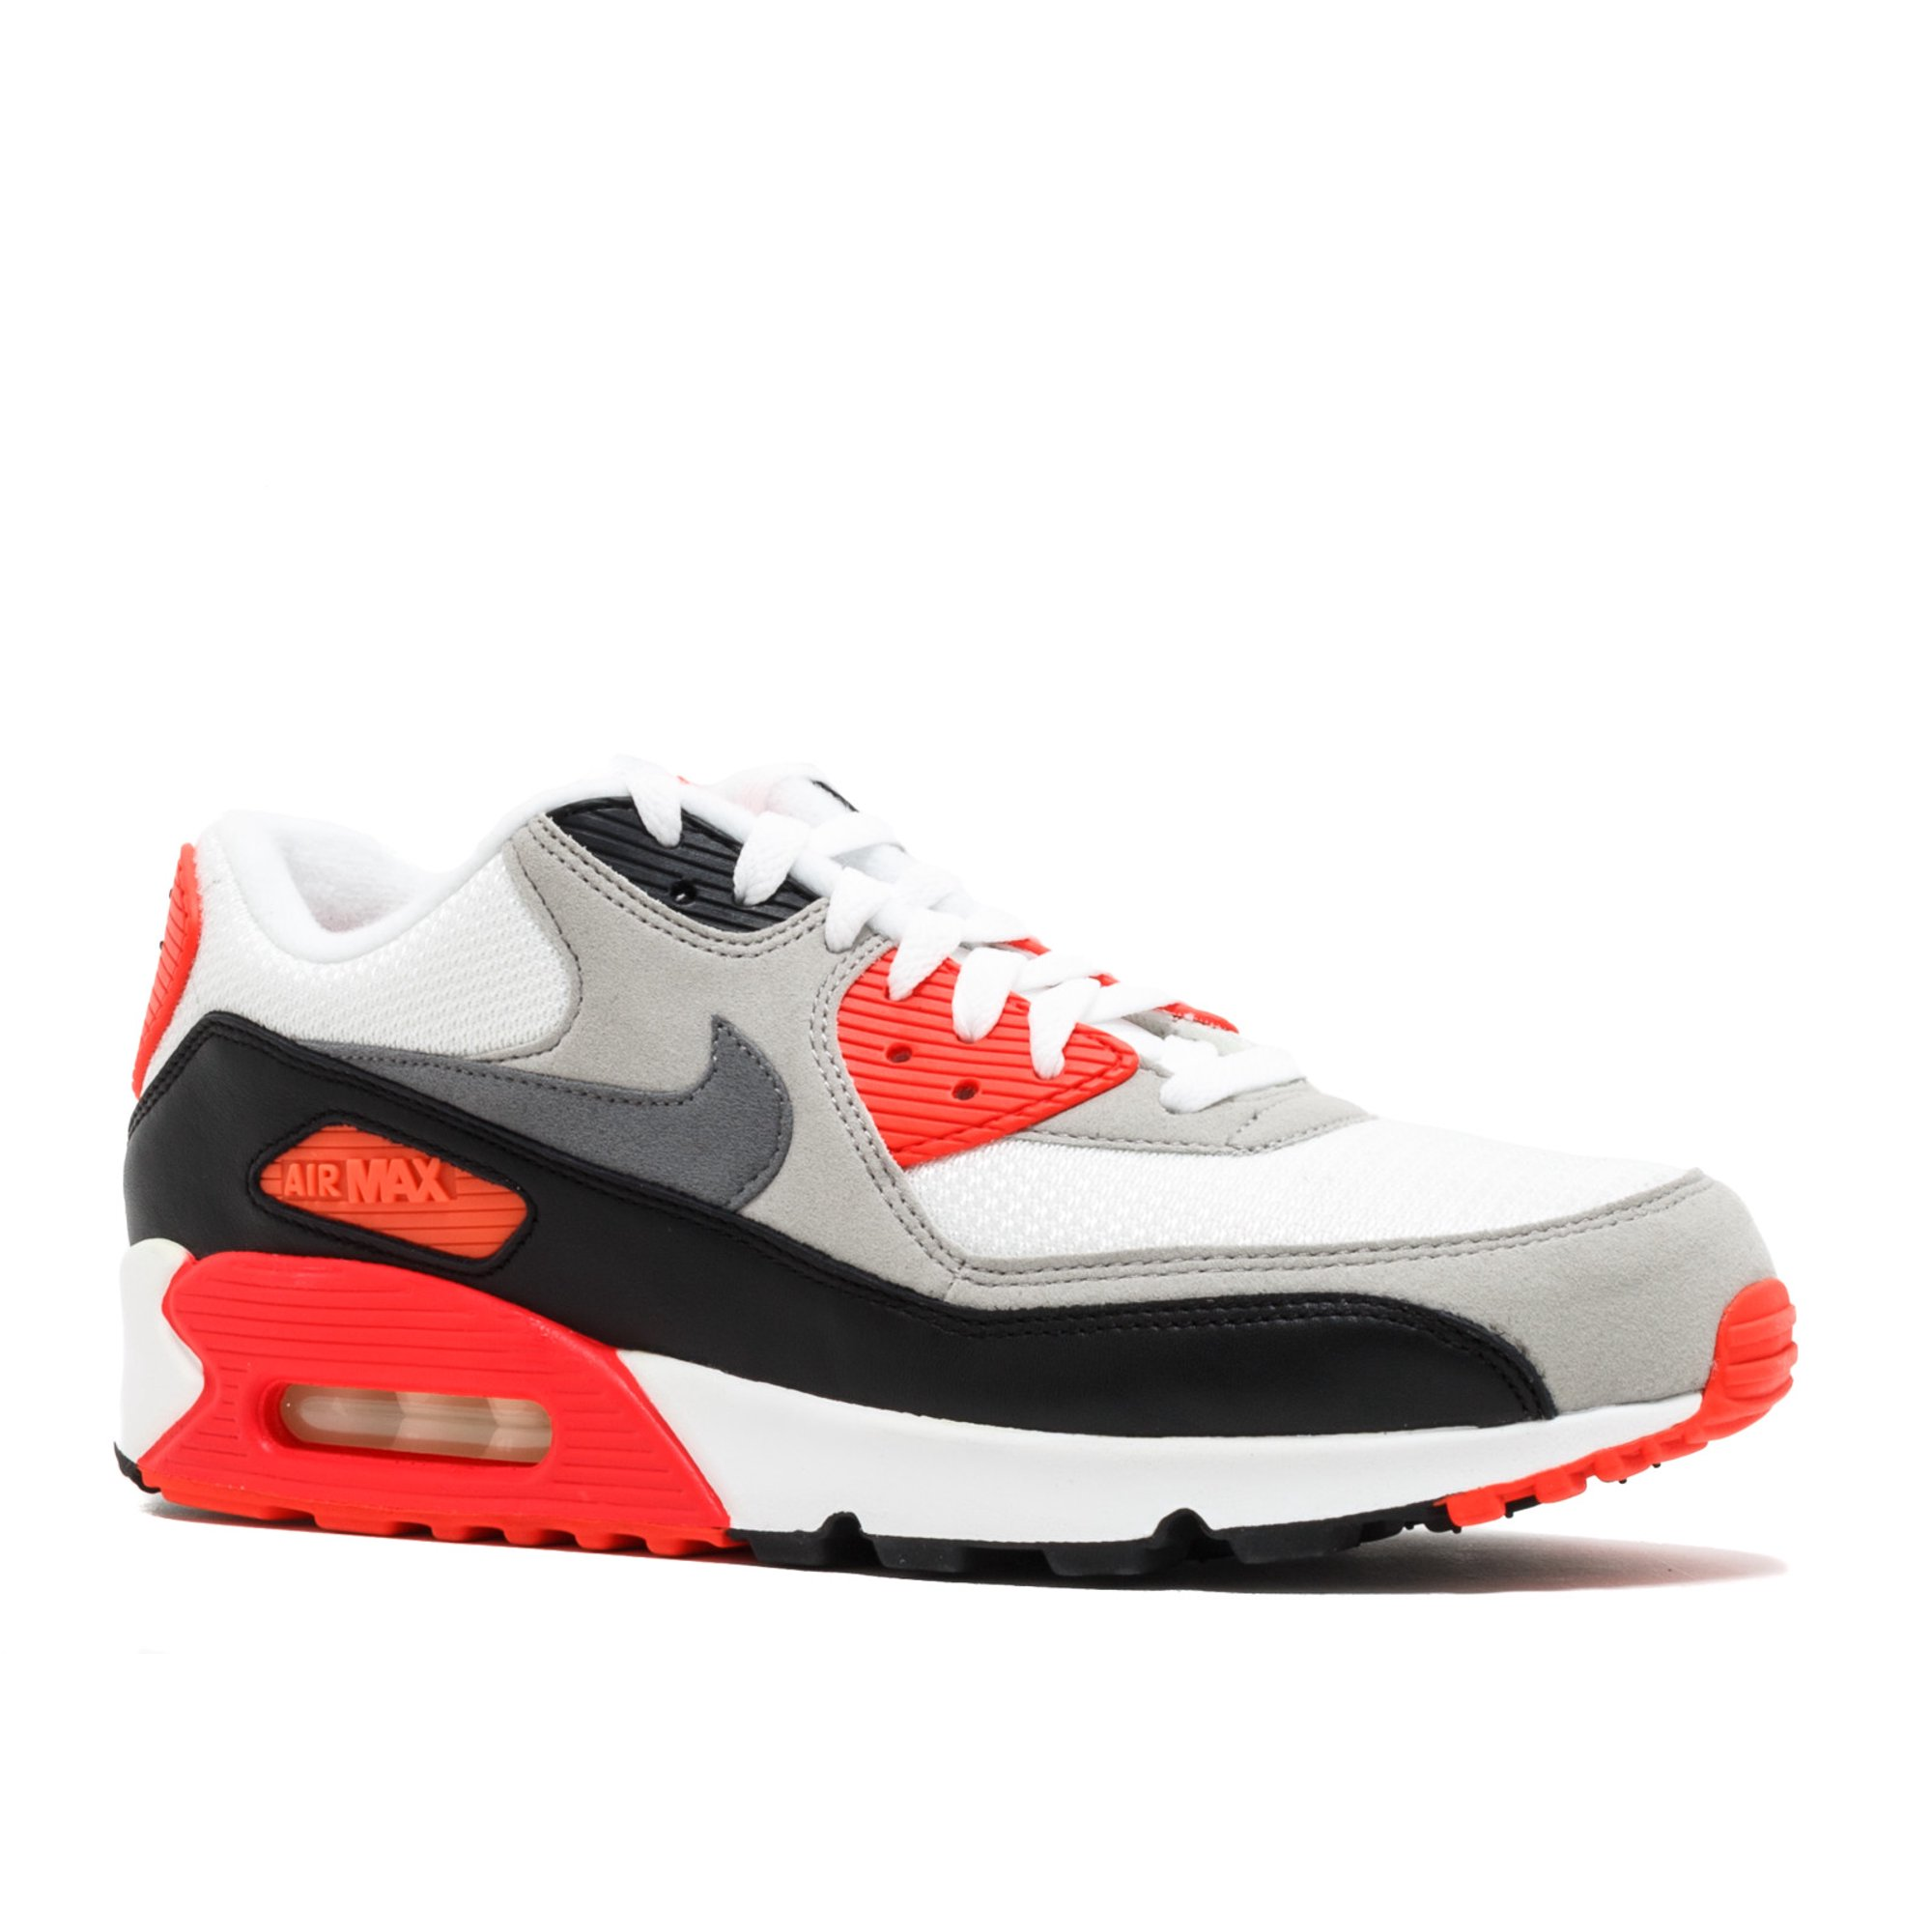 wholesale dealer 1a66e 0f46b Nike - Men - Air Max 90 Og 'Infrared' - 725233-106 - Size 12